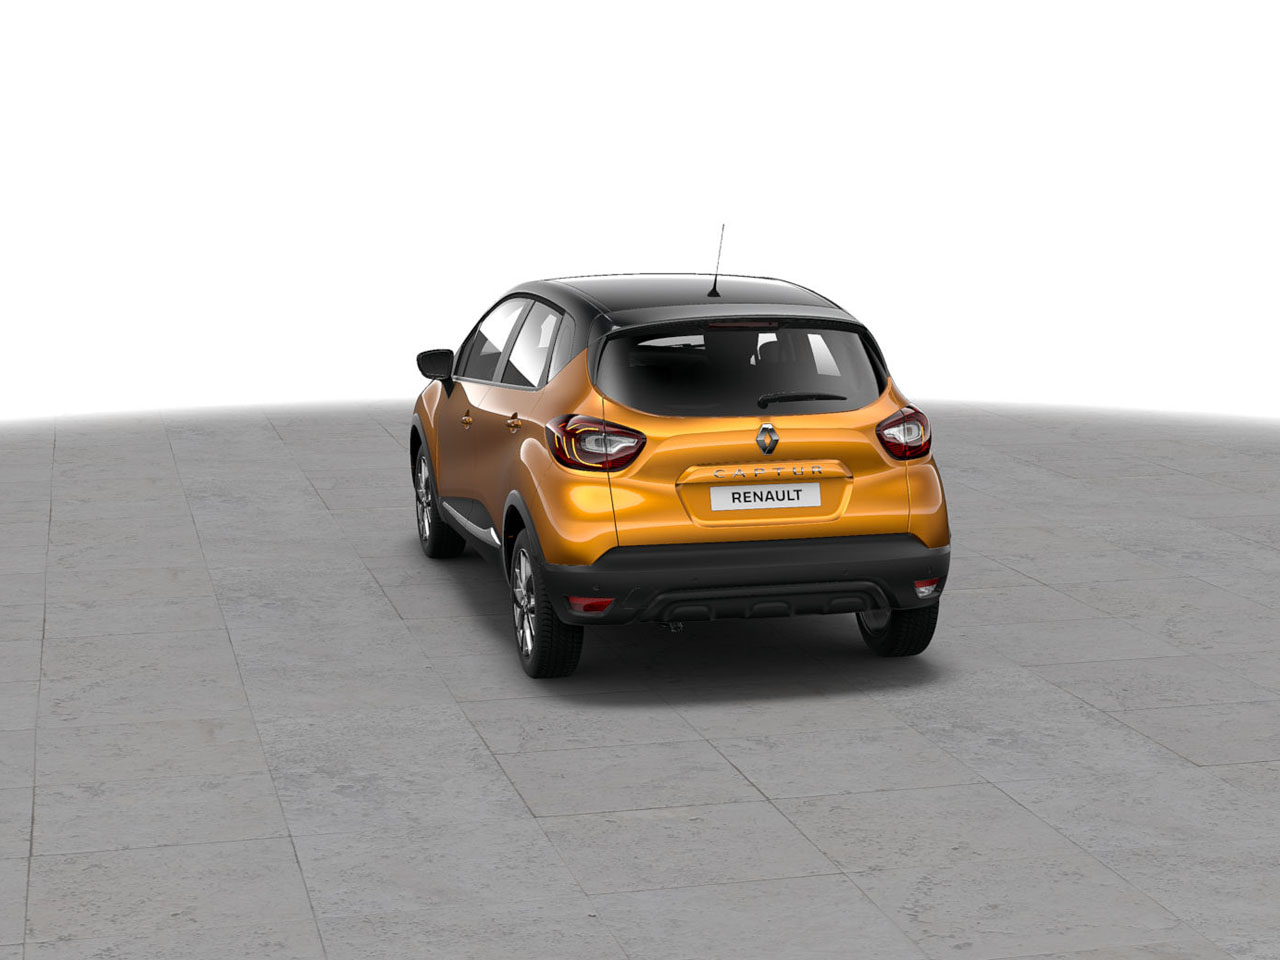 Renault Captur private lease 0.9 energy TCe 66kW S&S Intens